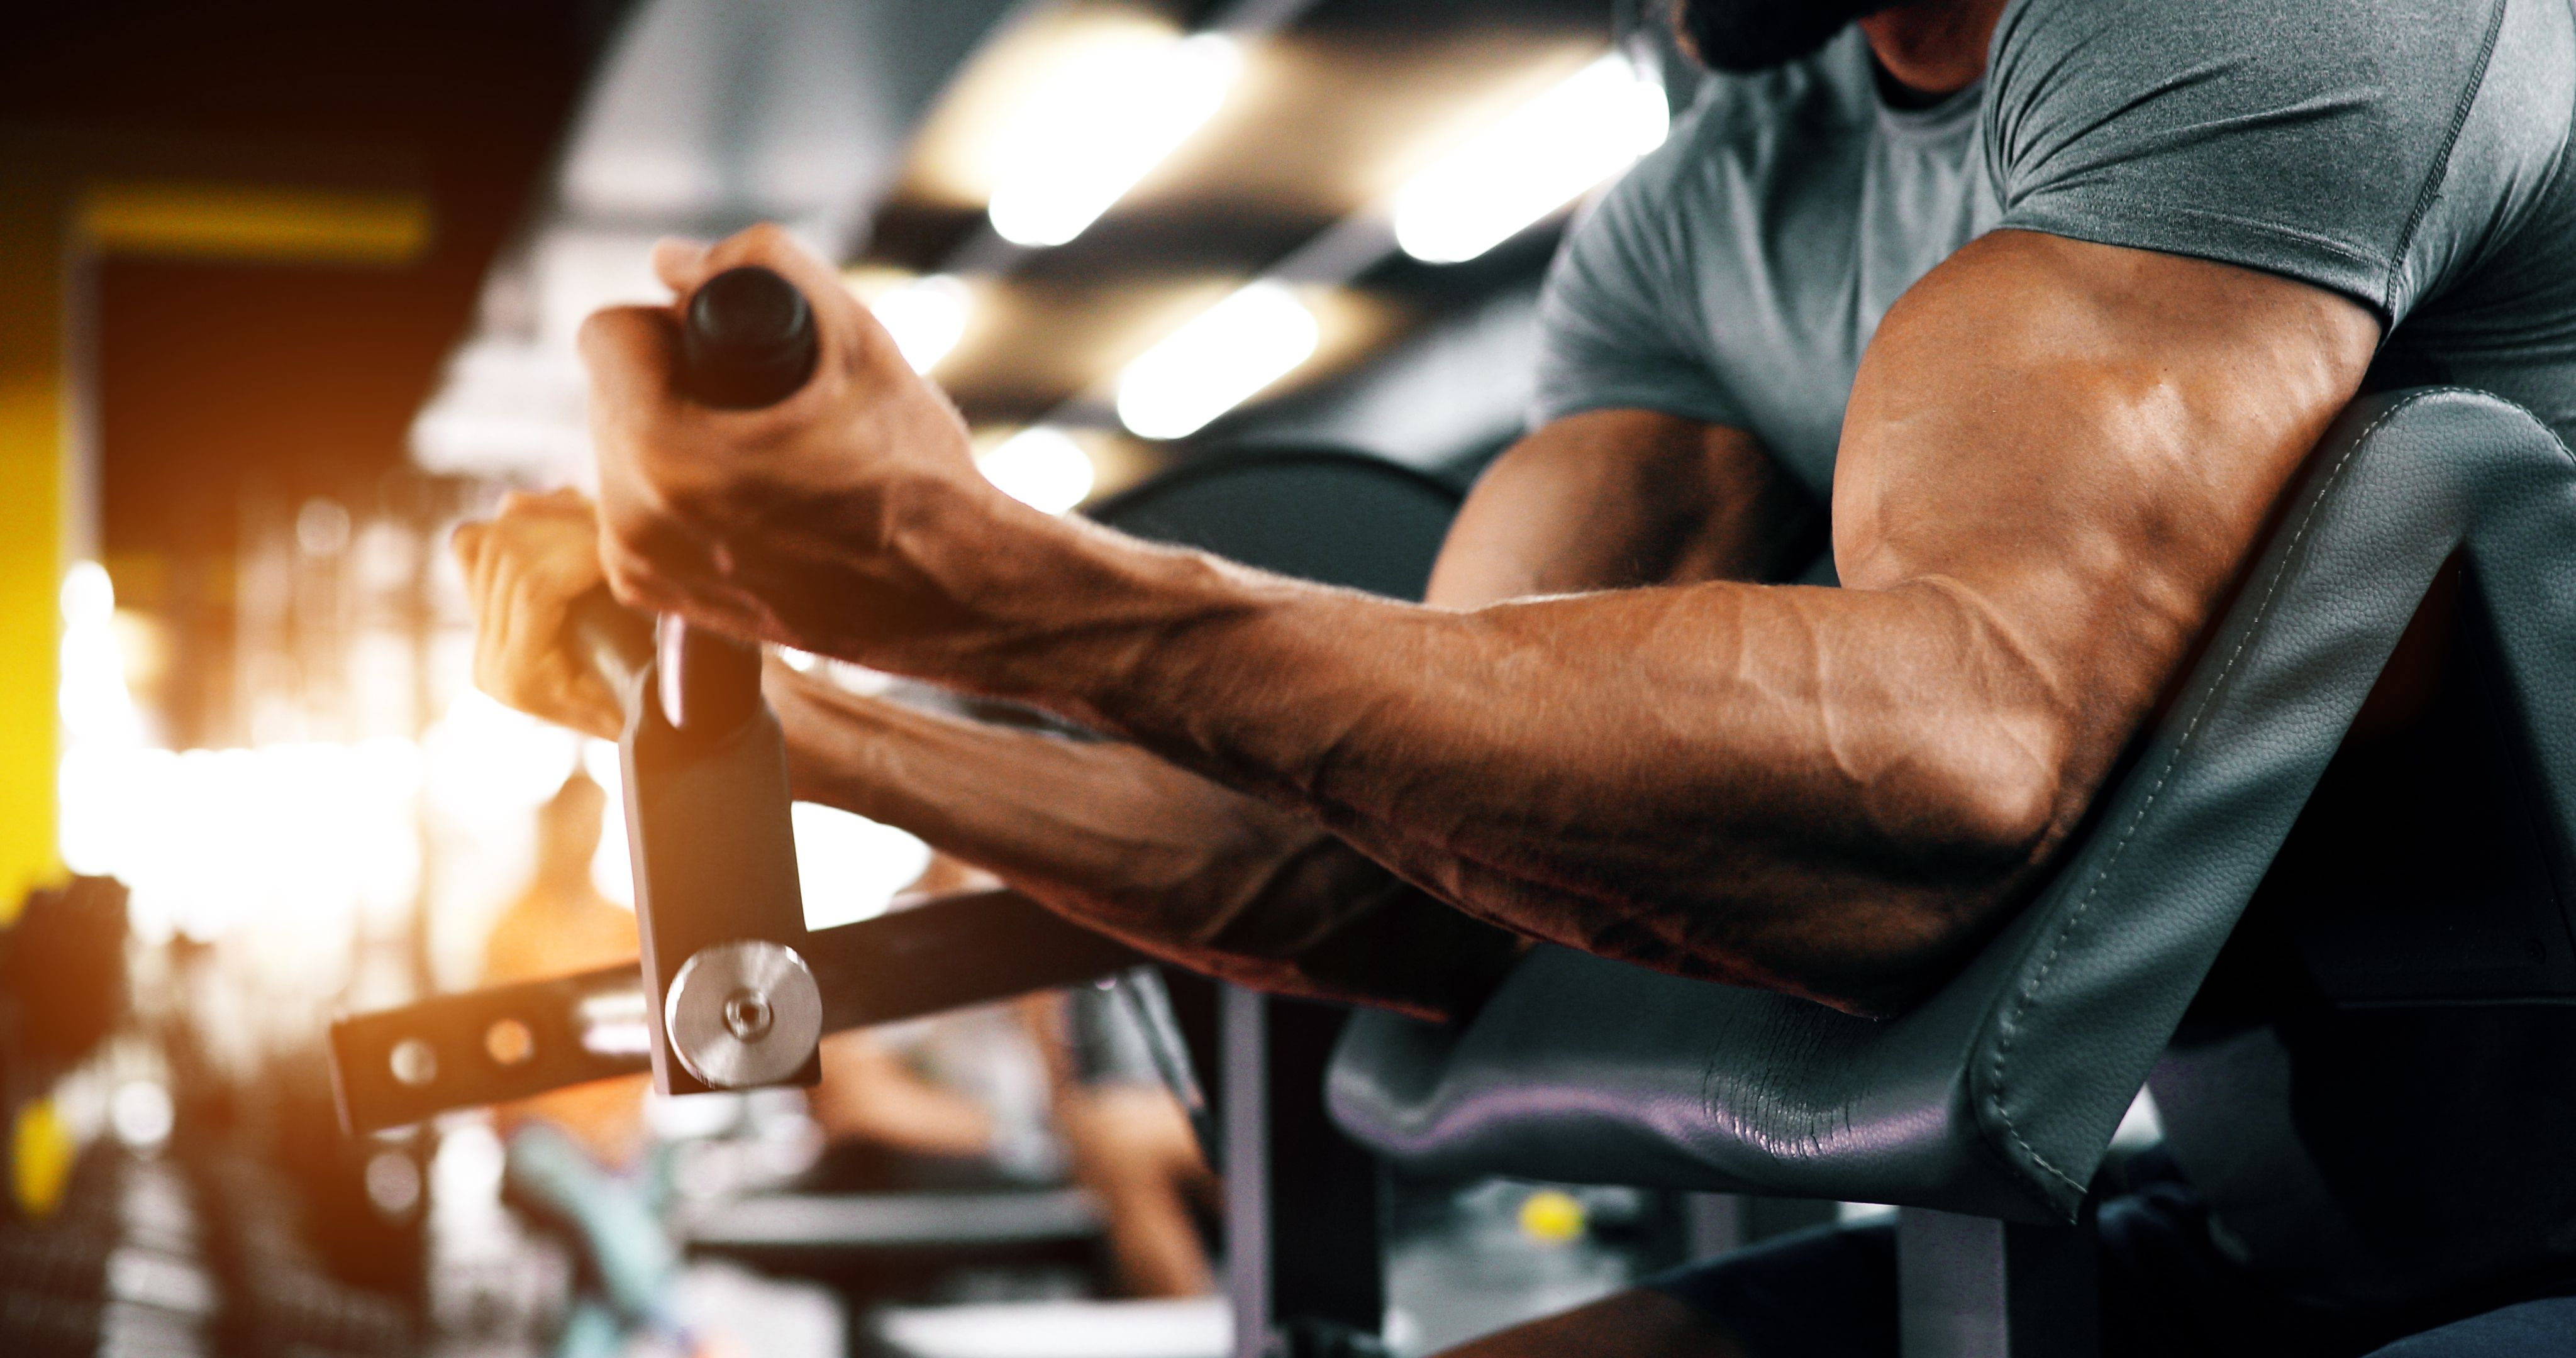 Best exercises to build massive arms